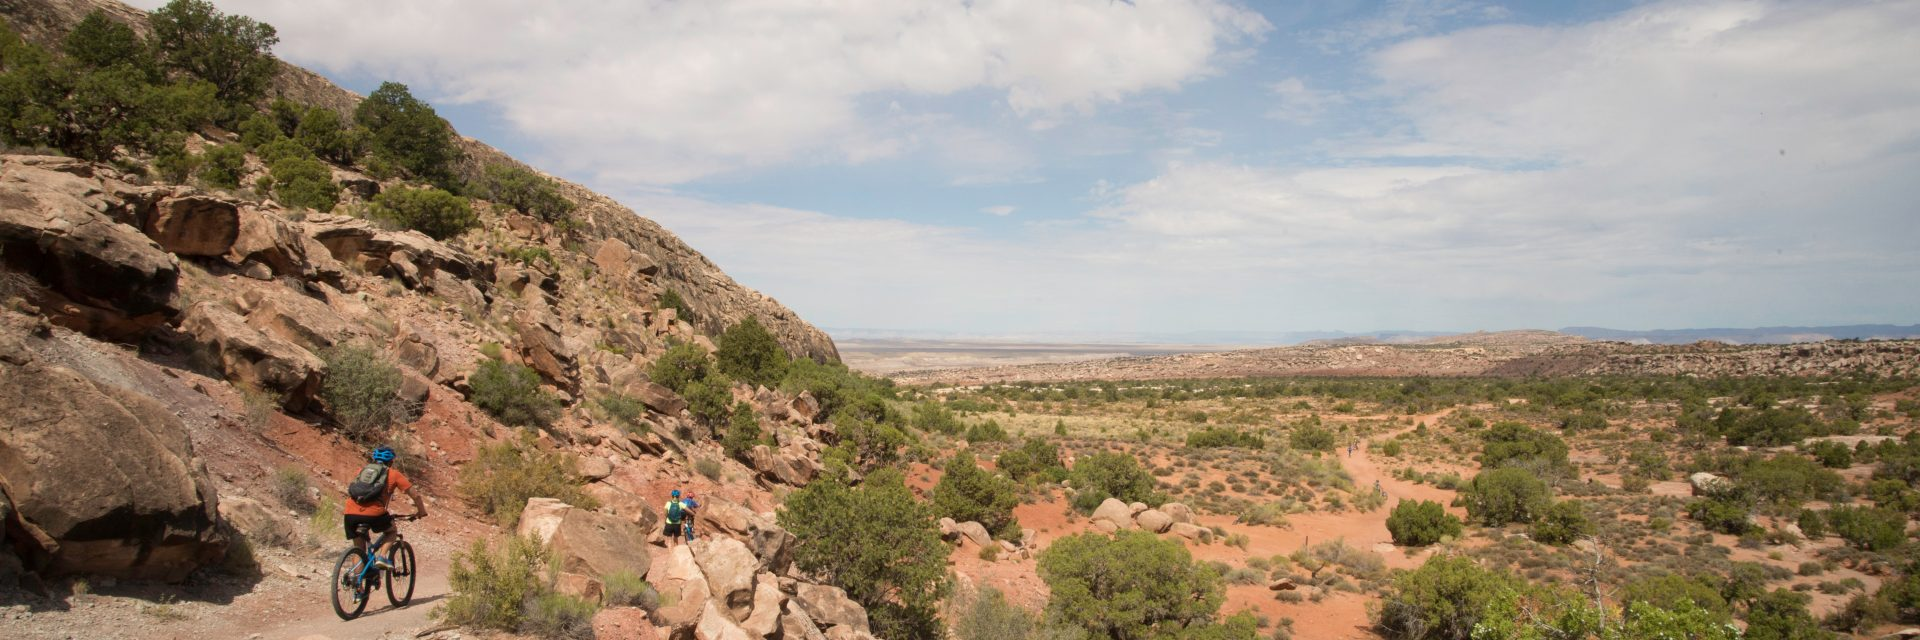 Back from the hike into Arches National Park, bikers descend the singletrack section of Klondike Bluff Trail, Moab UT